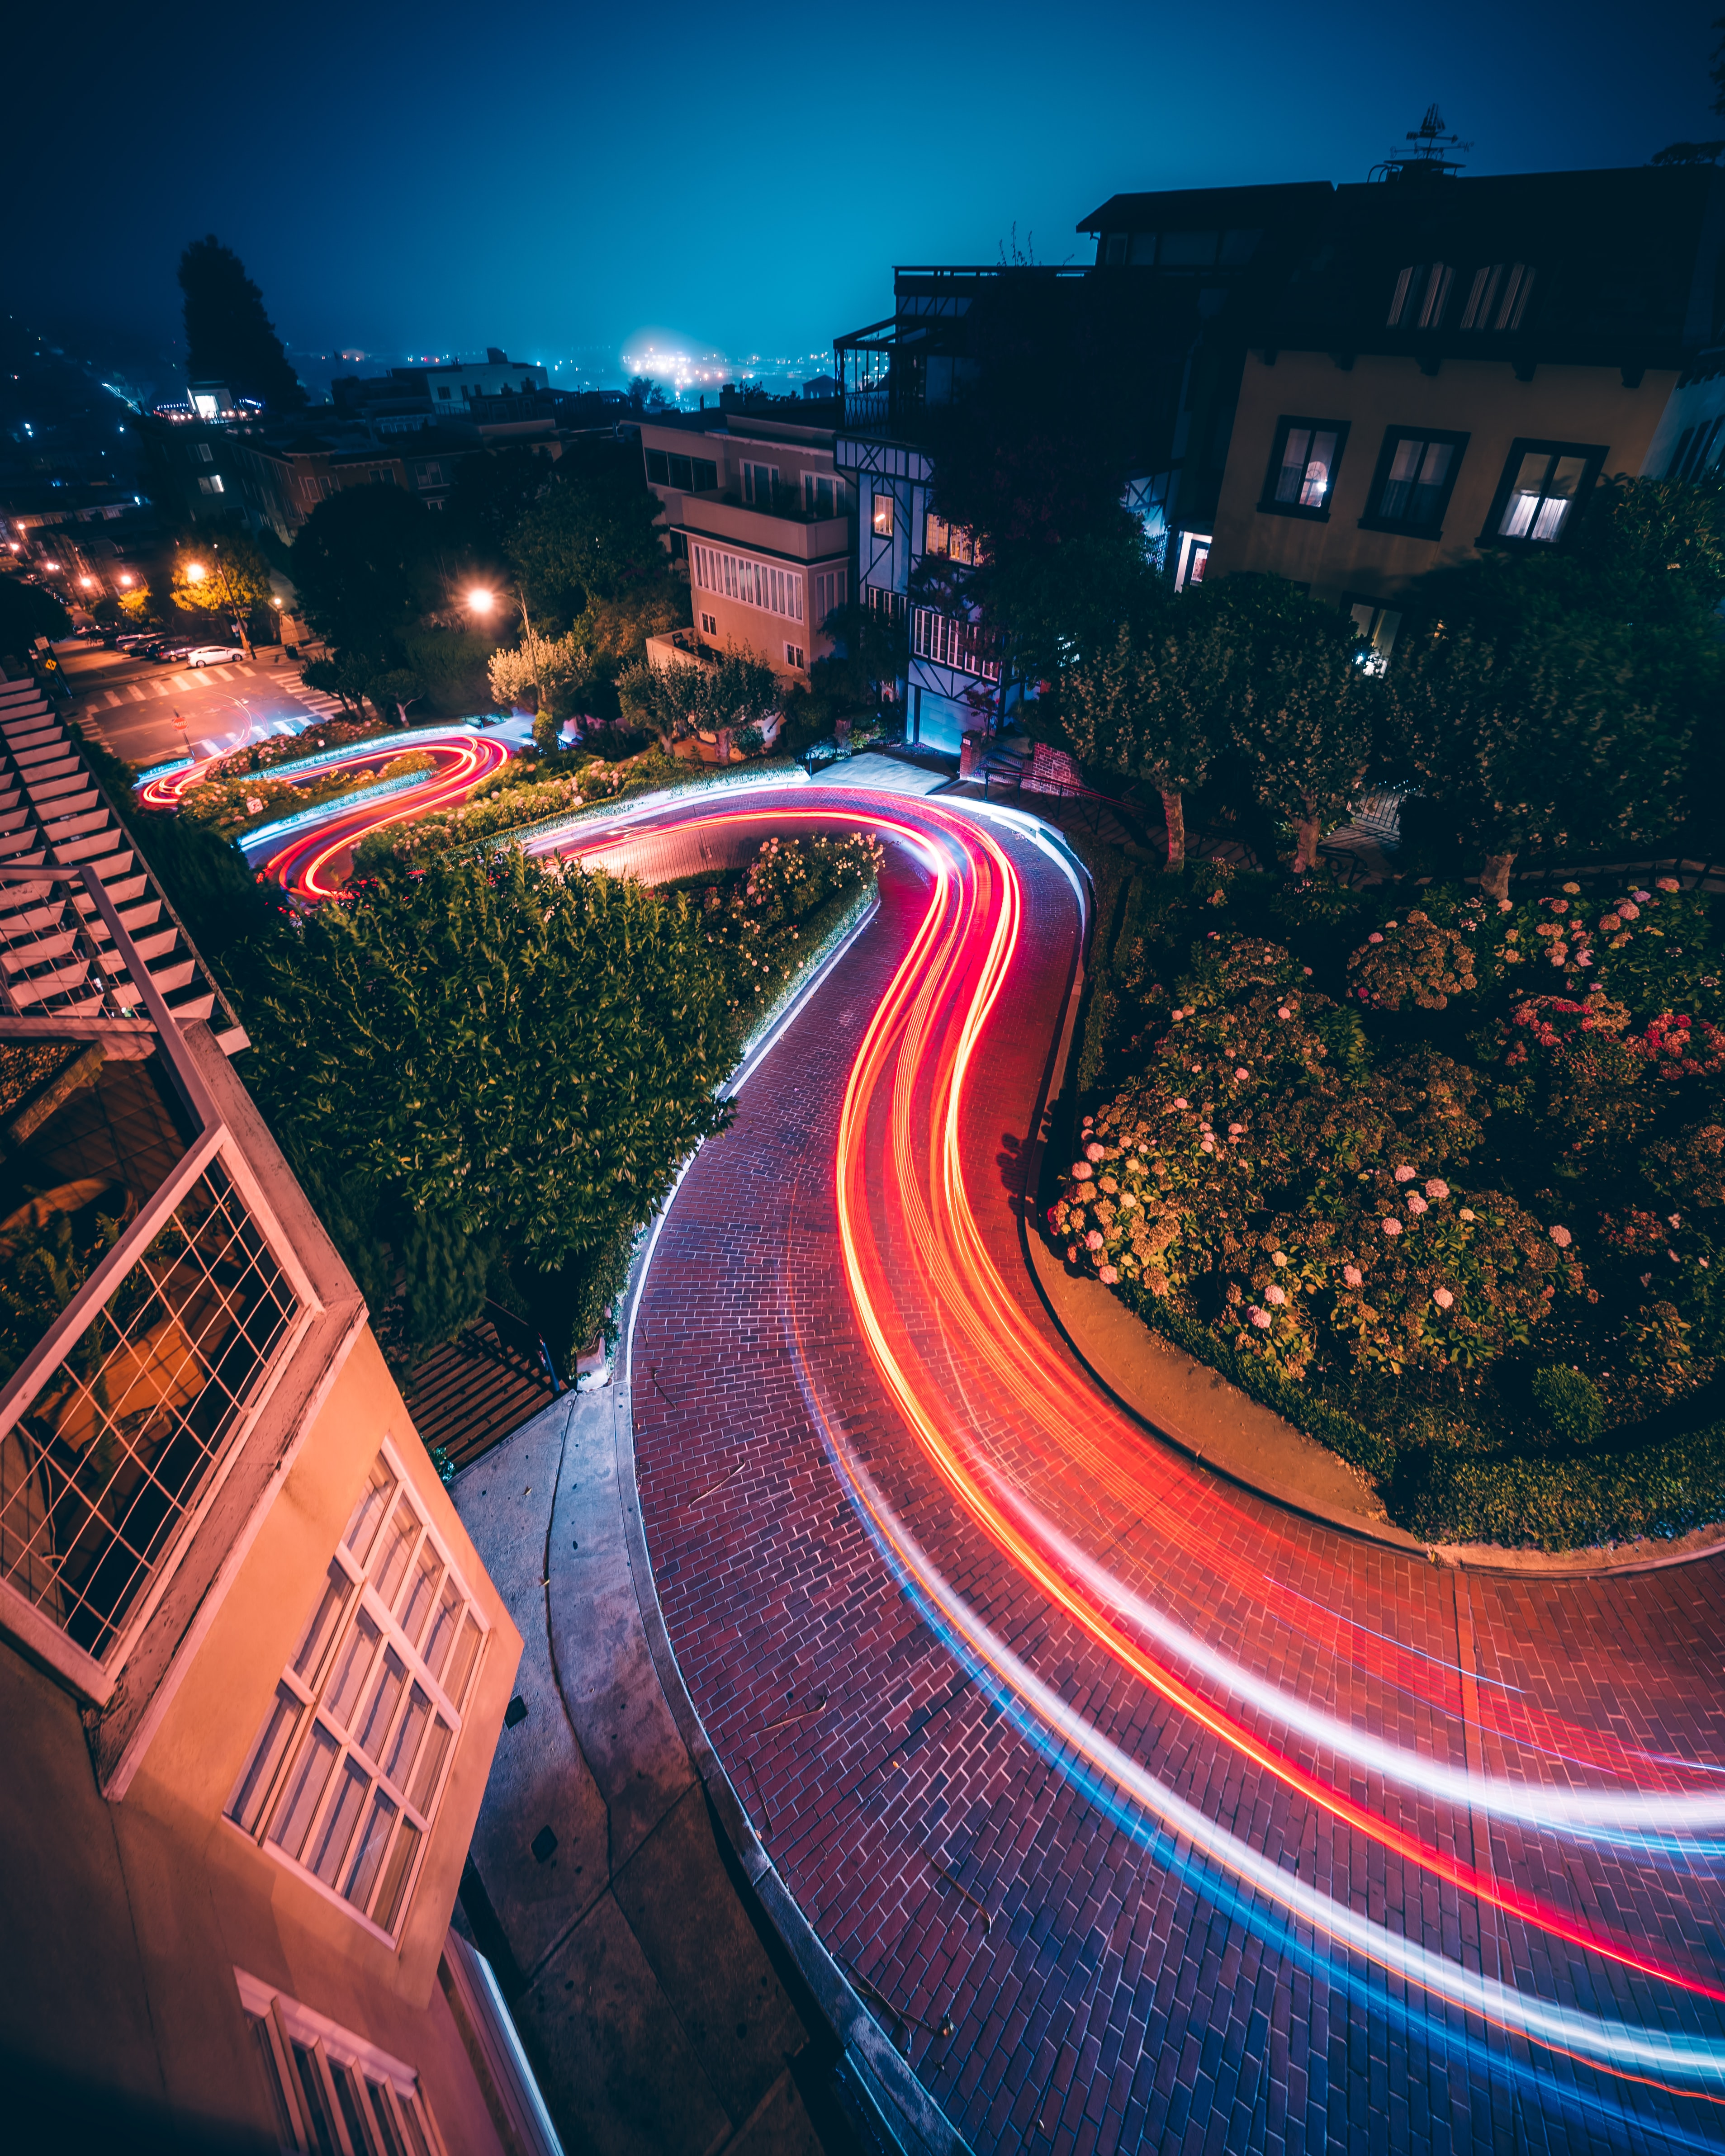 timelapse photography of vehicles near buildings